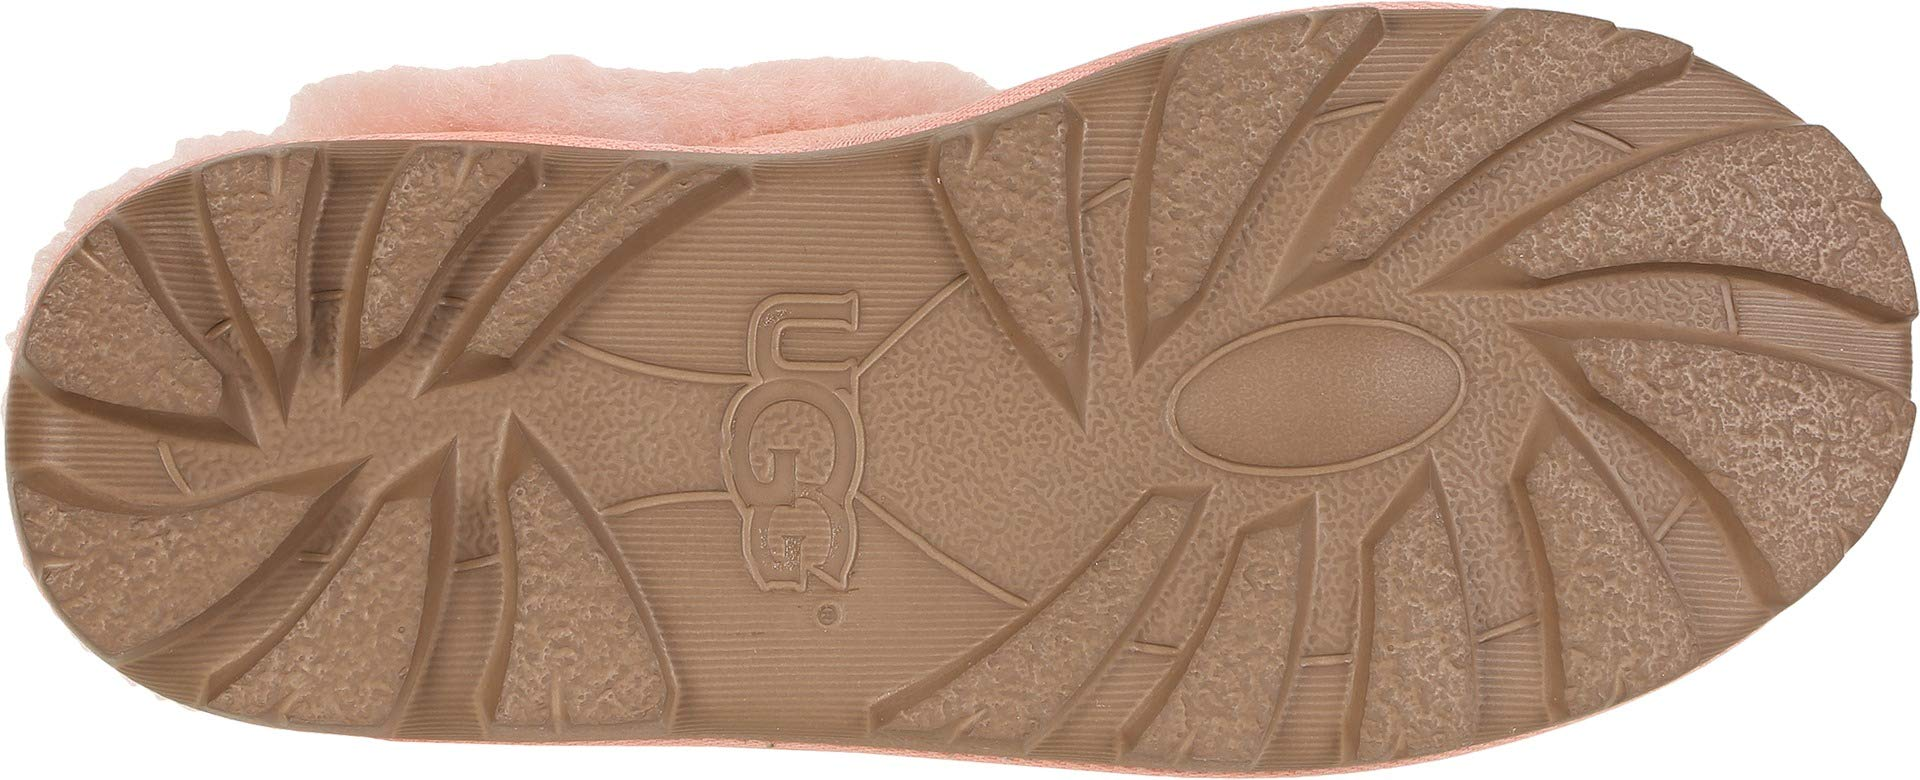 UGG Women's Coquette Slipper, Sunset, 8 M US by UGG